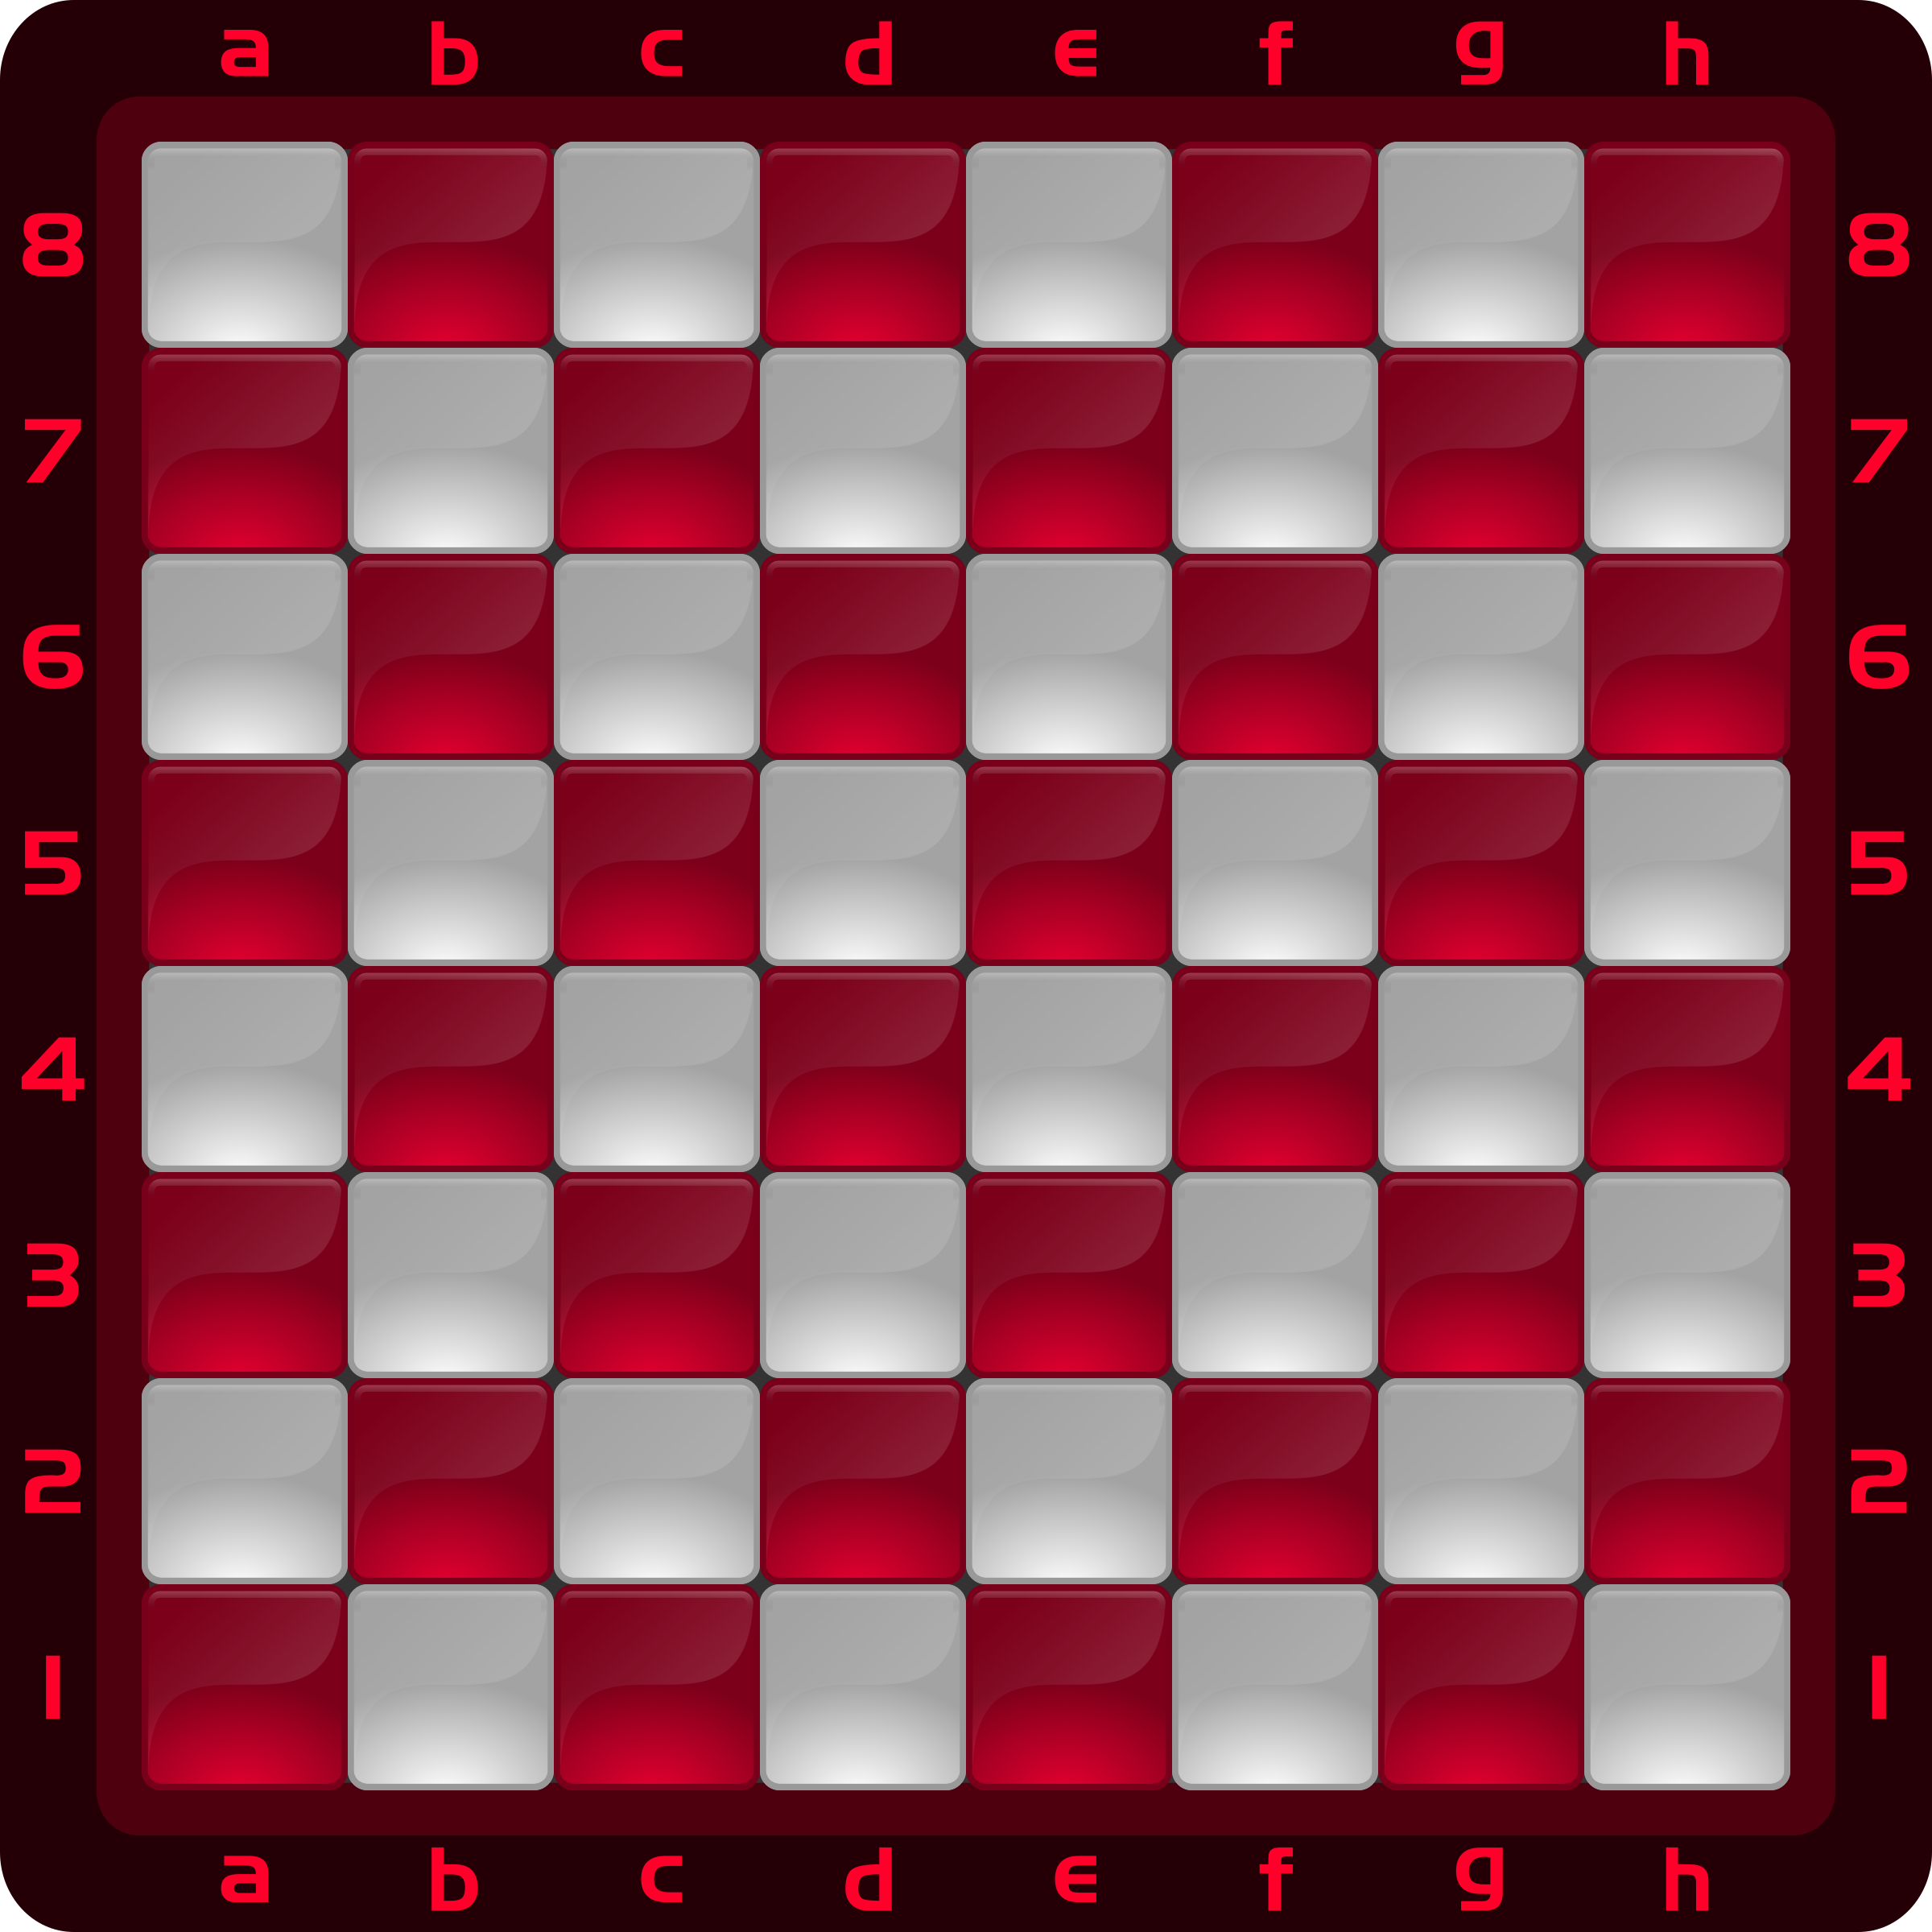 Chessboard Glossy Squares - Red by DG-RA